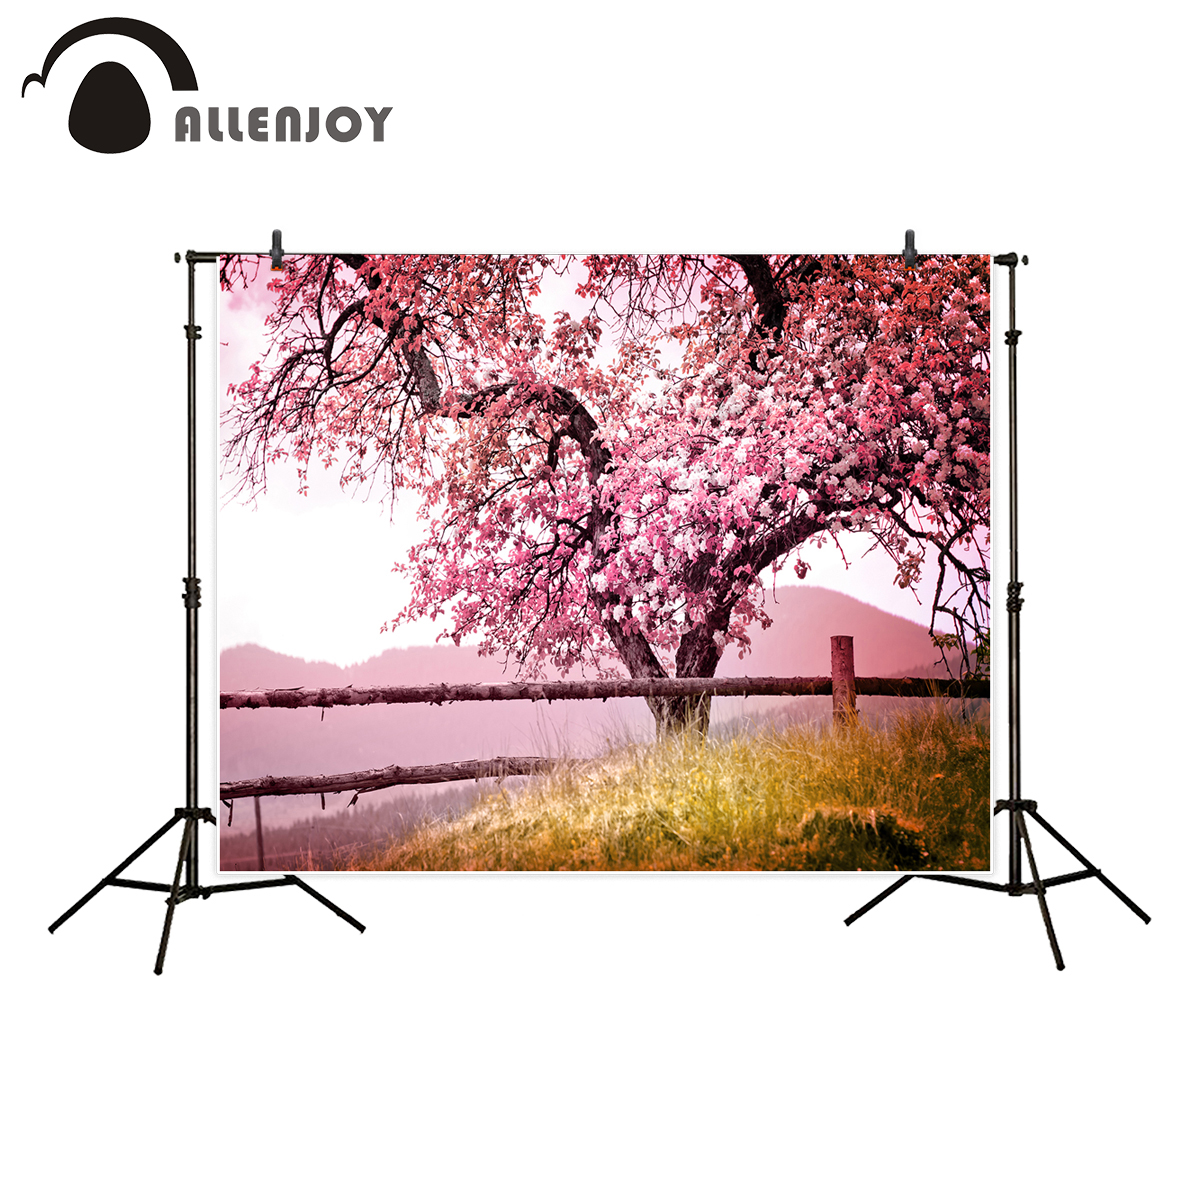 Allenjoy photography background spring pink tree mountain Cherry blossoms backdrop photocall photo studio printed new allenjoy photography backdrop library books student child newborn photo studio photocall background original design